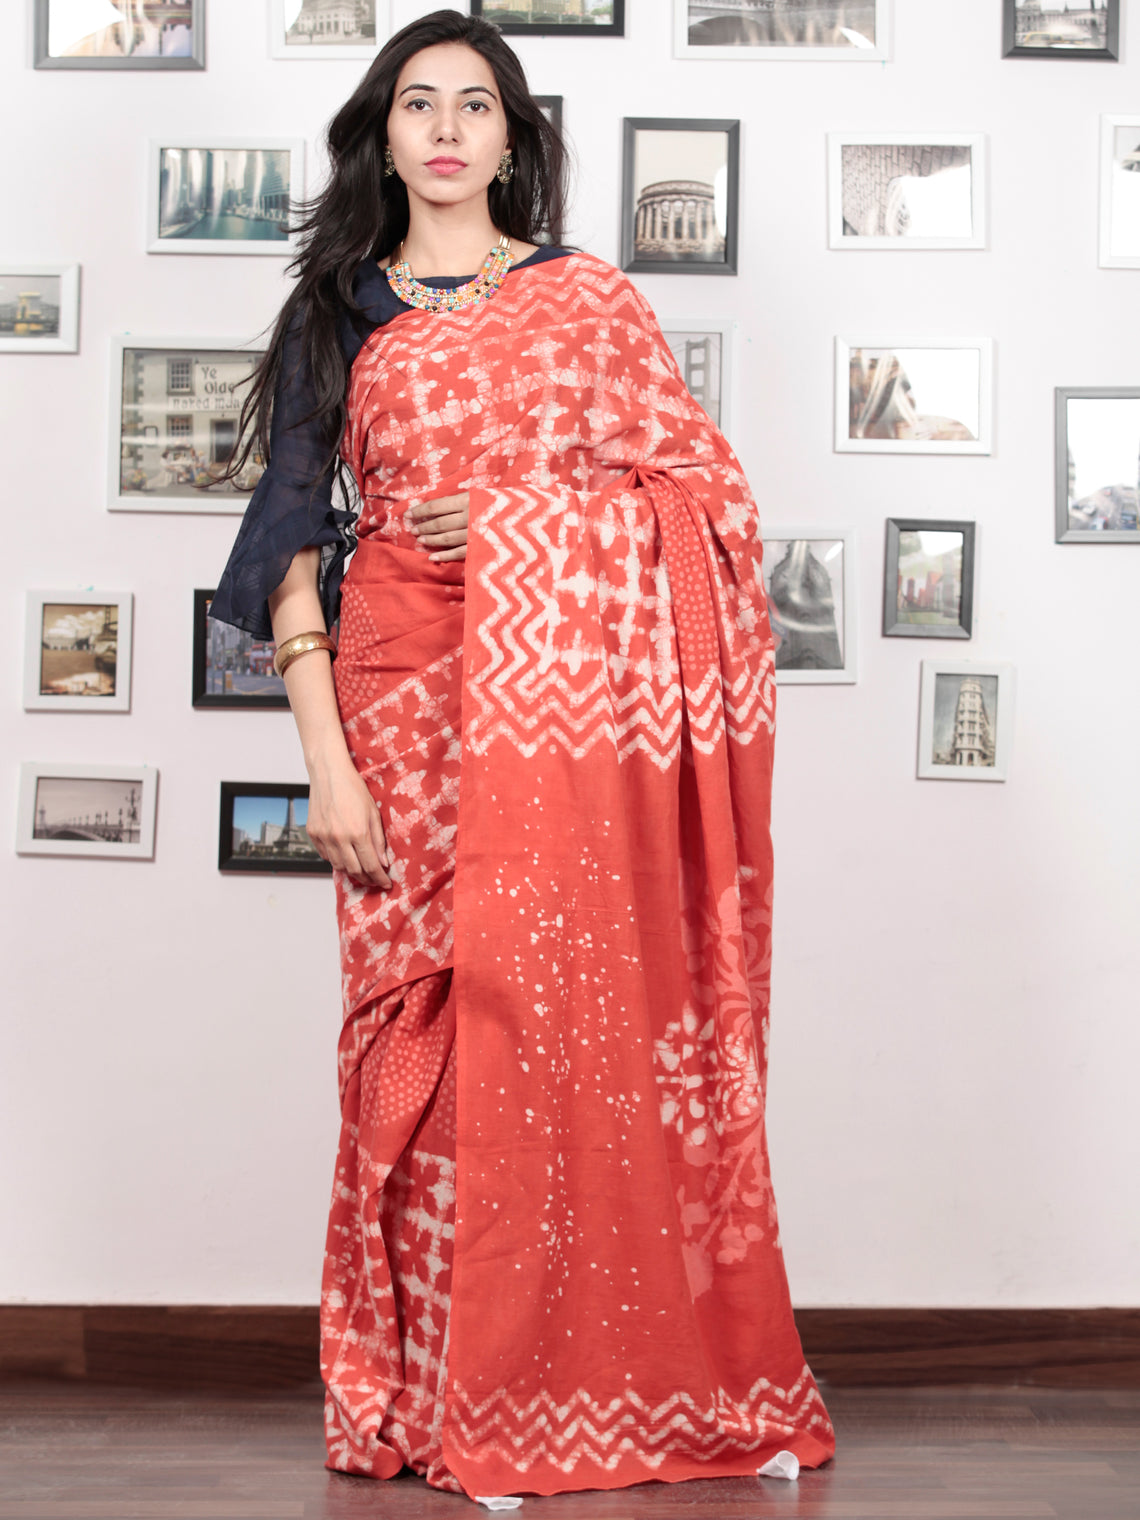 Red Ivory Hand Block Printed Cotton Mul Saree With Tassels - S031703022